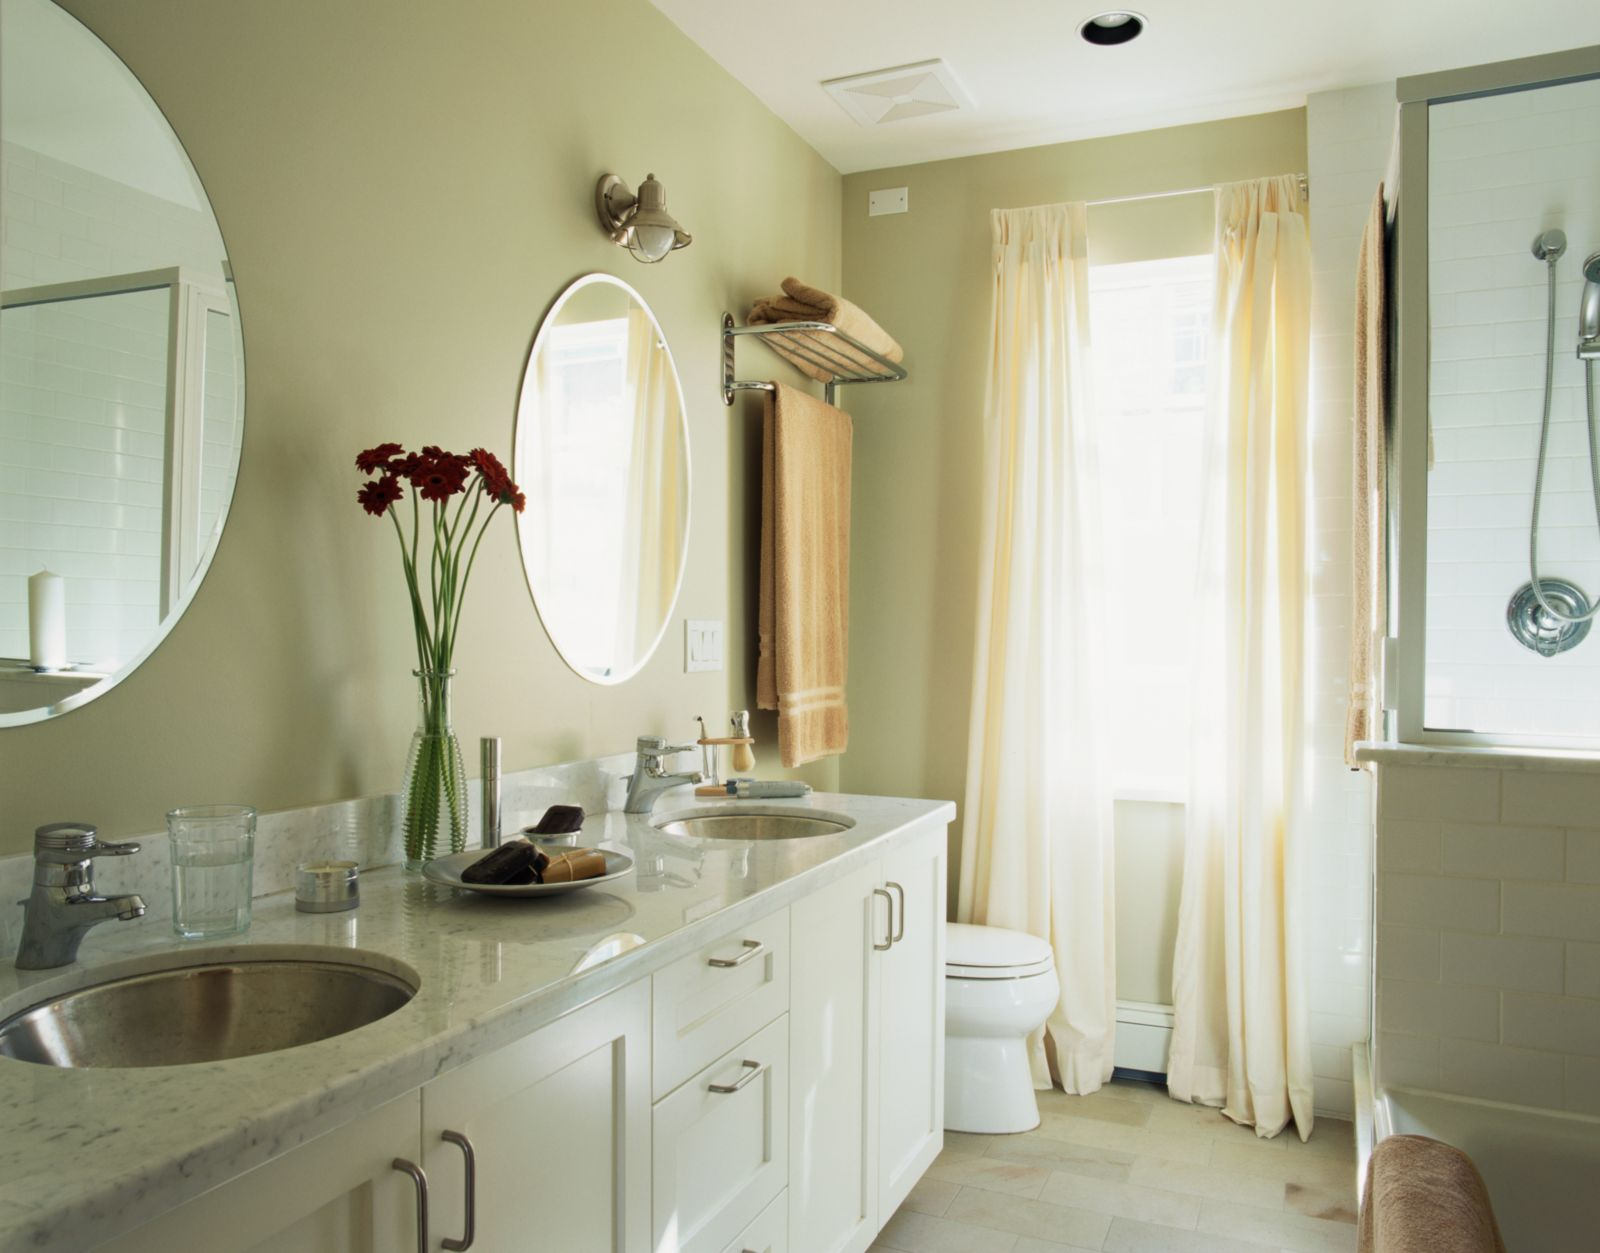 How To Keep Bathroom Sanitary And Clean 6 Tips Home